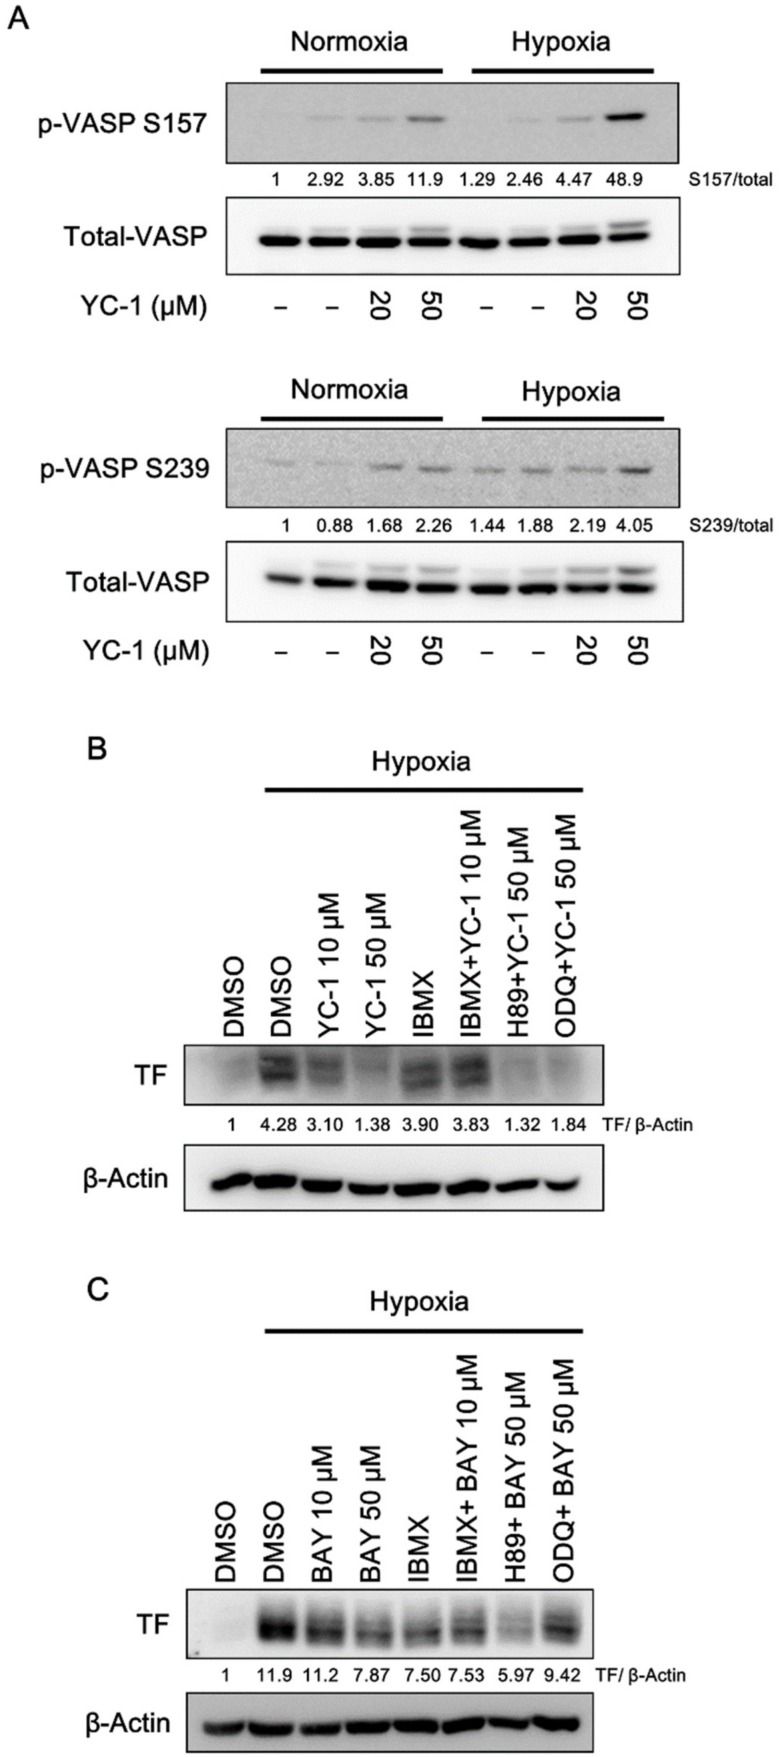 YC-1 activates cyclic nucleotide-dependent protein kinases in A549 cells. ( A ) A549 cells were pretreated with YC-1 for 1 h and incubated under normoxia or hypoxia for another 1 h. Cell lysates were subjected to Western blotting for phospho-VASP. ( B , C ) A549 cells were pretreated with the PDE inhibitor IBMX (100 μM), the sGC inhibitor ODQ (10 μM), or the <t>PKA</t> inhibitor <t>H89</t> (5 μM) for 30 min, then treated with YC-1 or BAY 41-2272 (BAY) for 1 h and incubated under hypoxia for another 24 h. TF expression was determined by Western blotting.